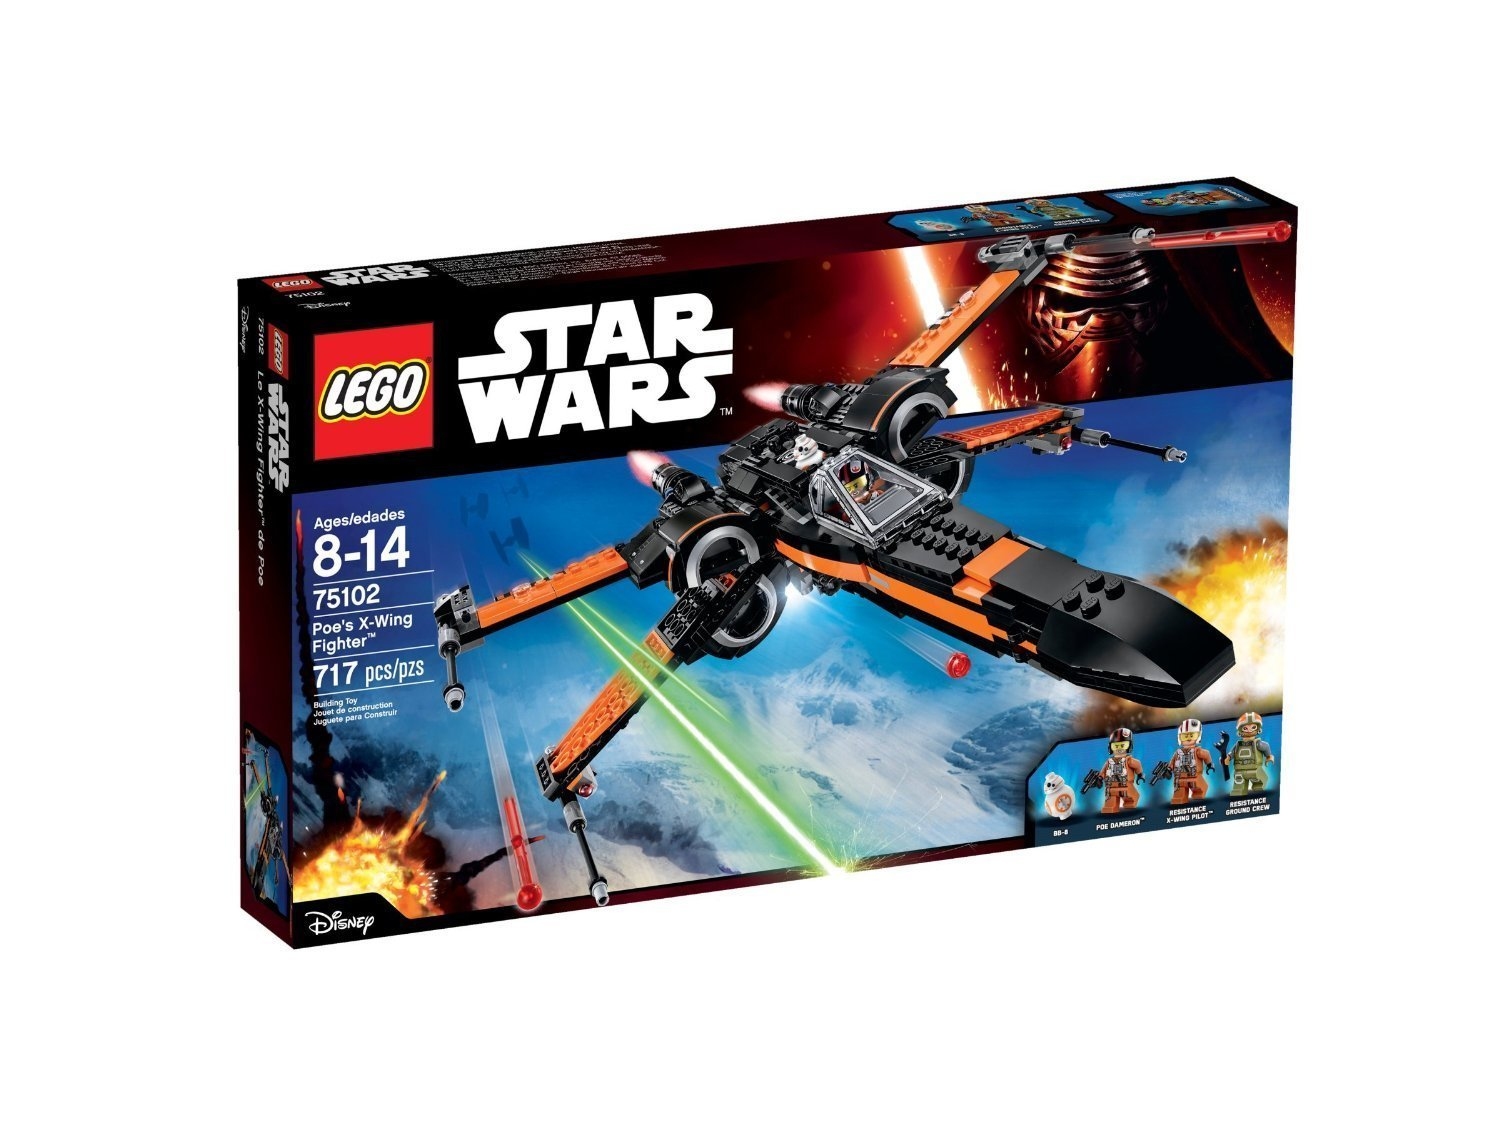 717pcs Building Block Spacecraft Poes X-Wing Fighter LEGO Star Wars Toys